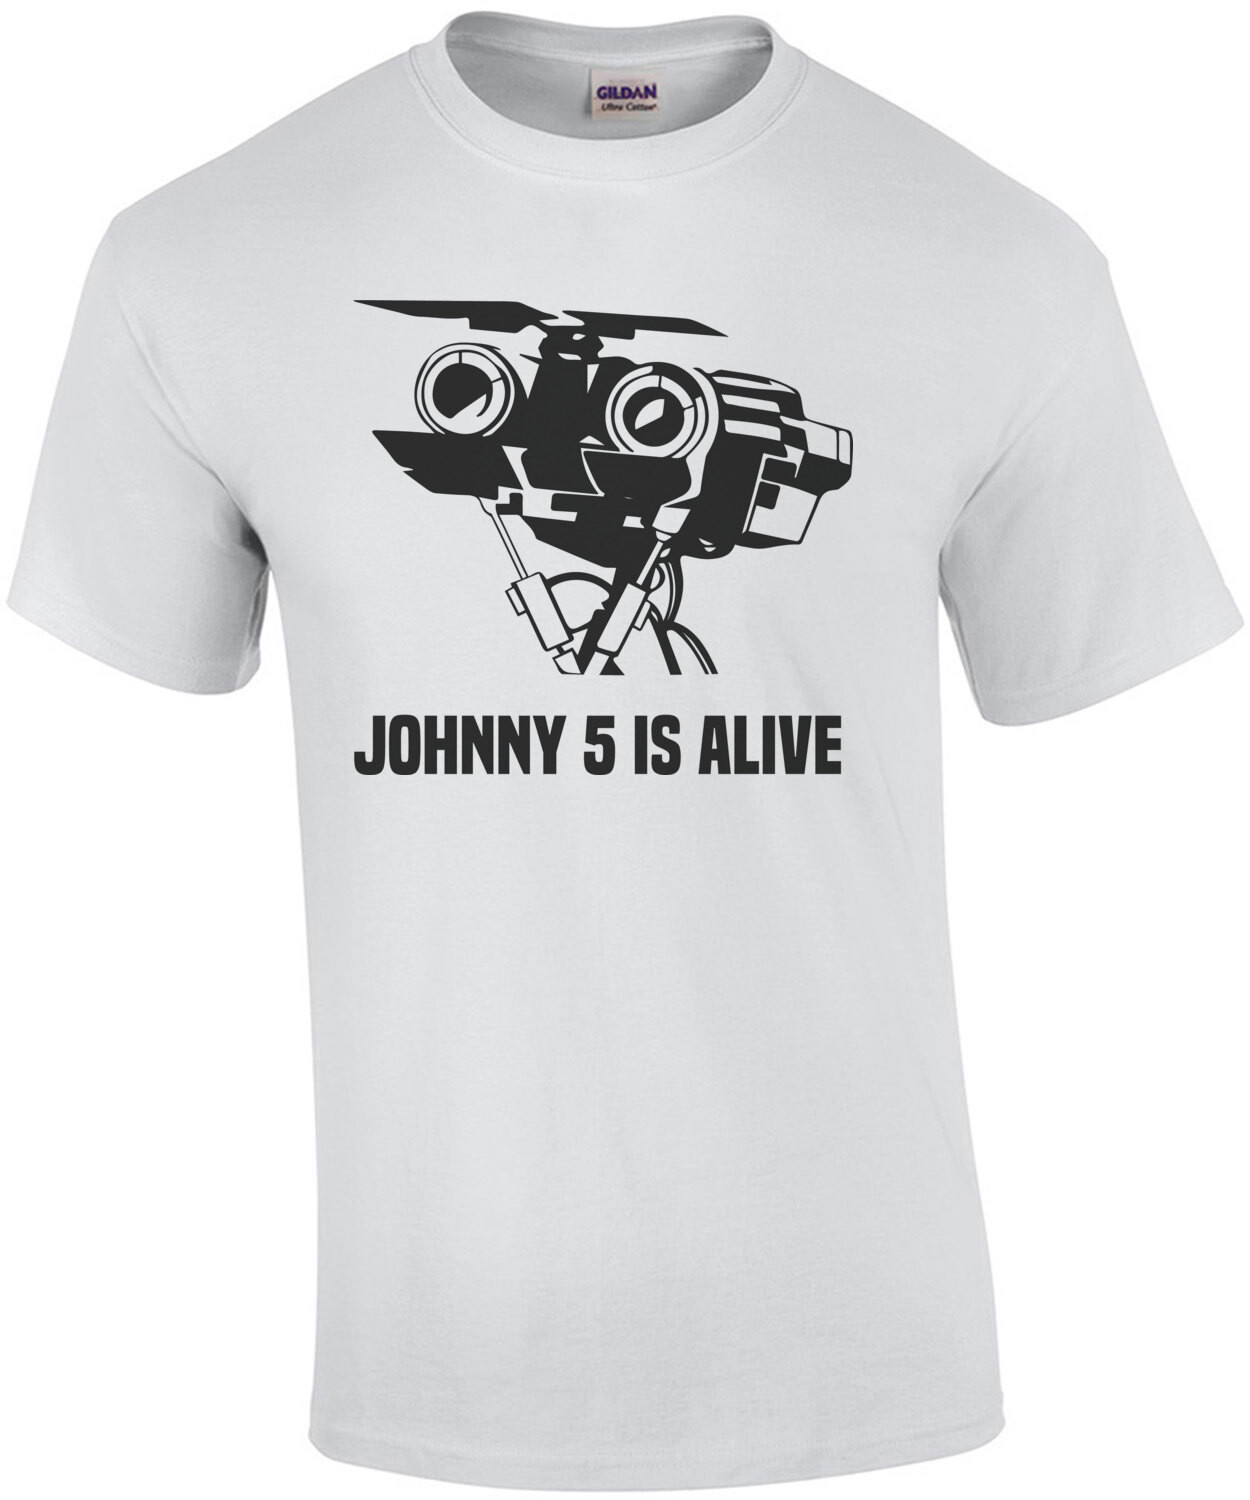 Johnny 5 is alive - Short Circuit - 80's T-Shirt